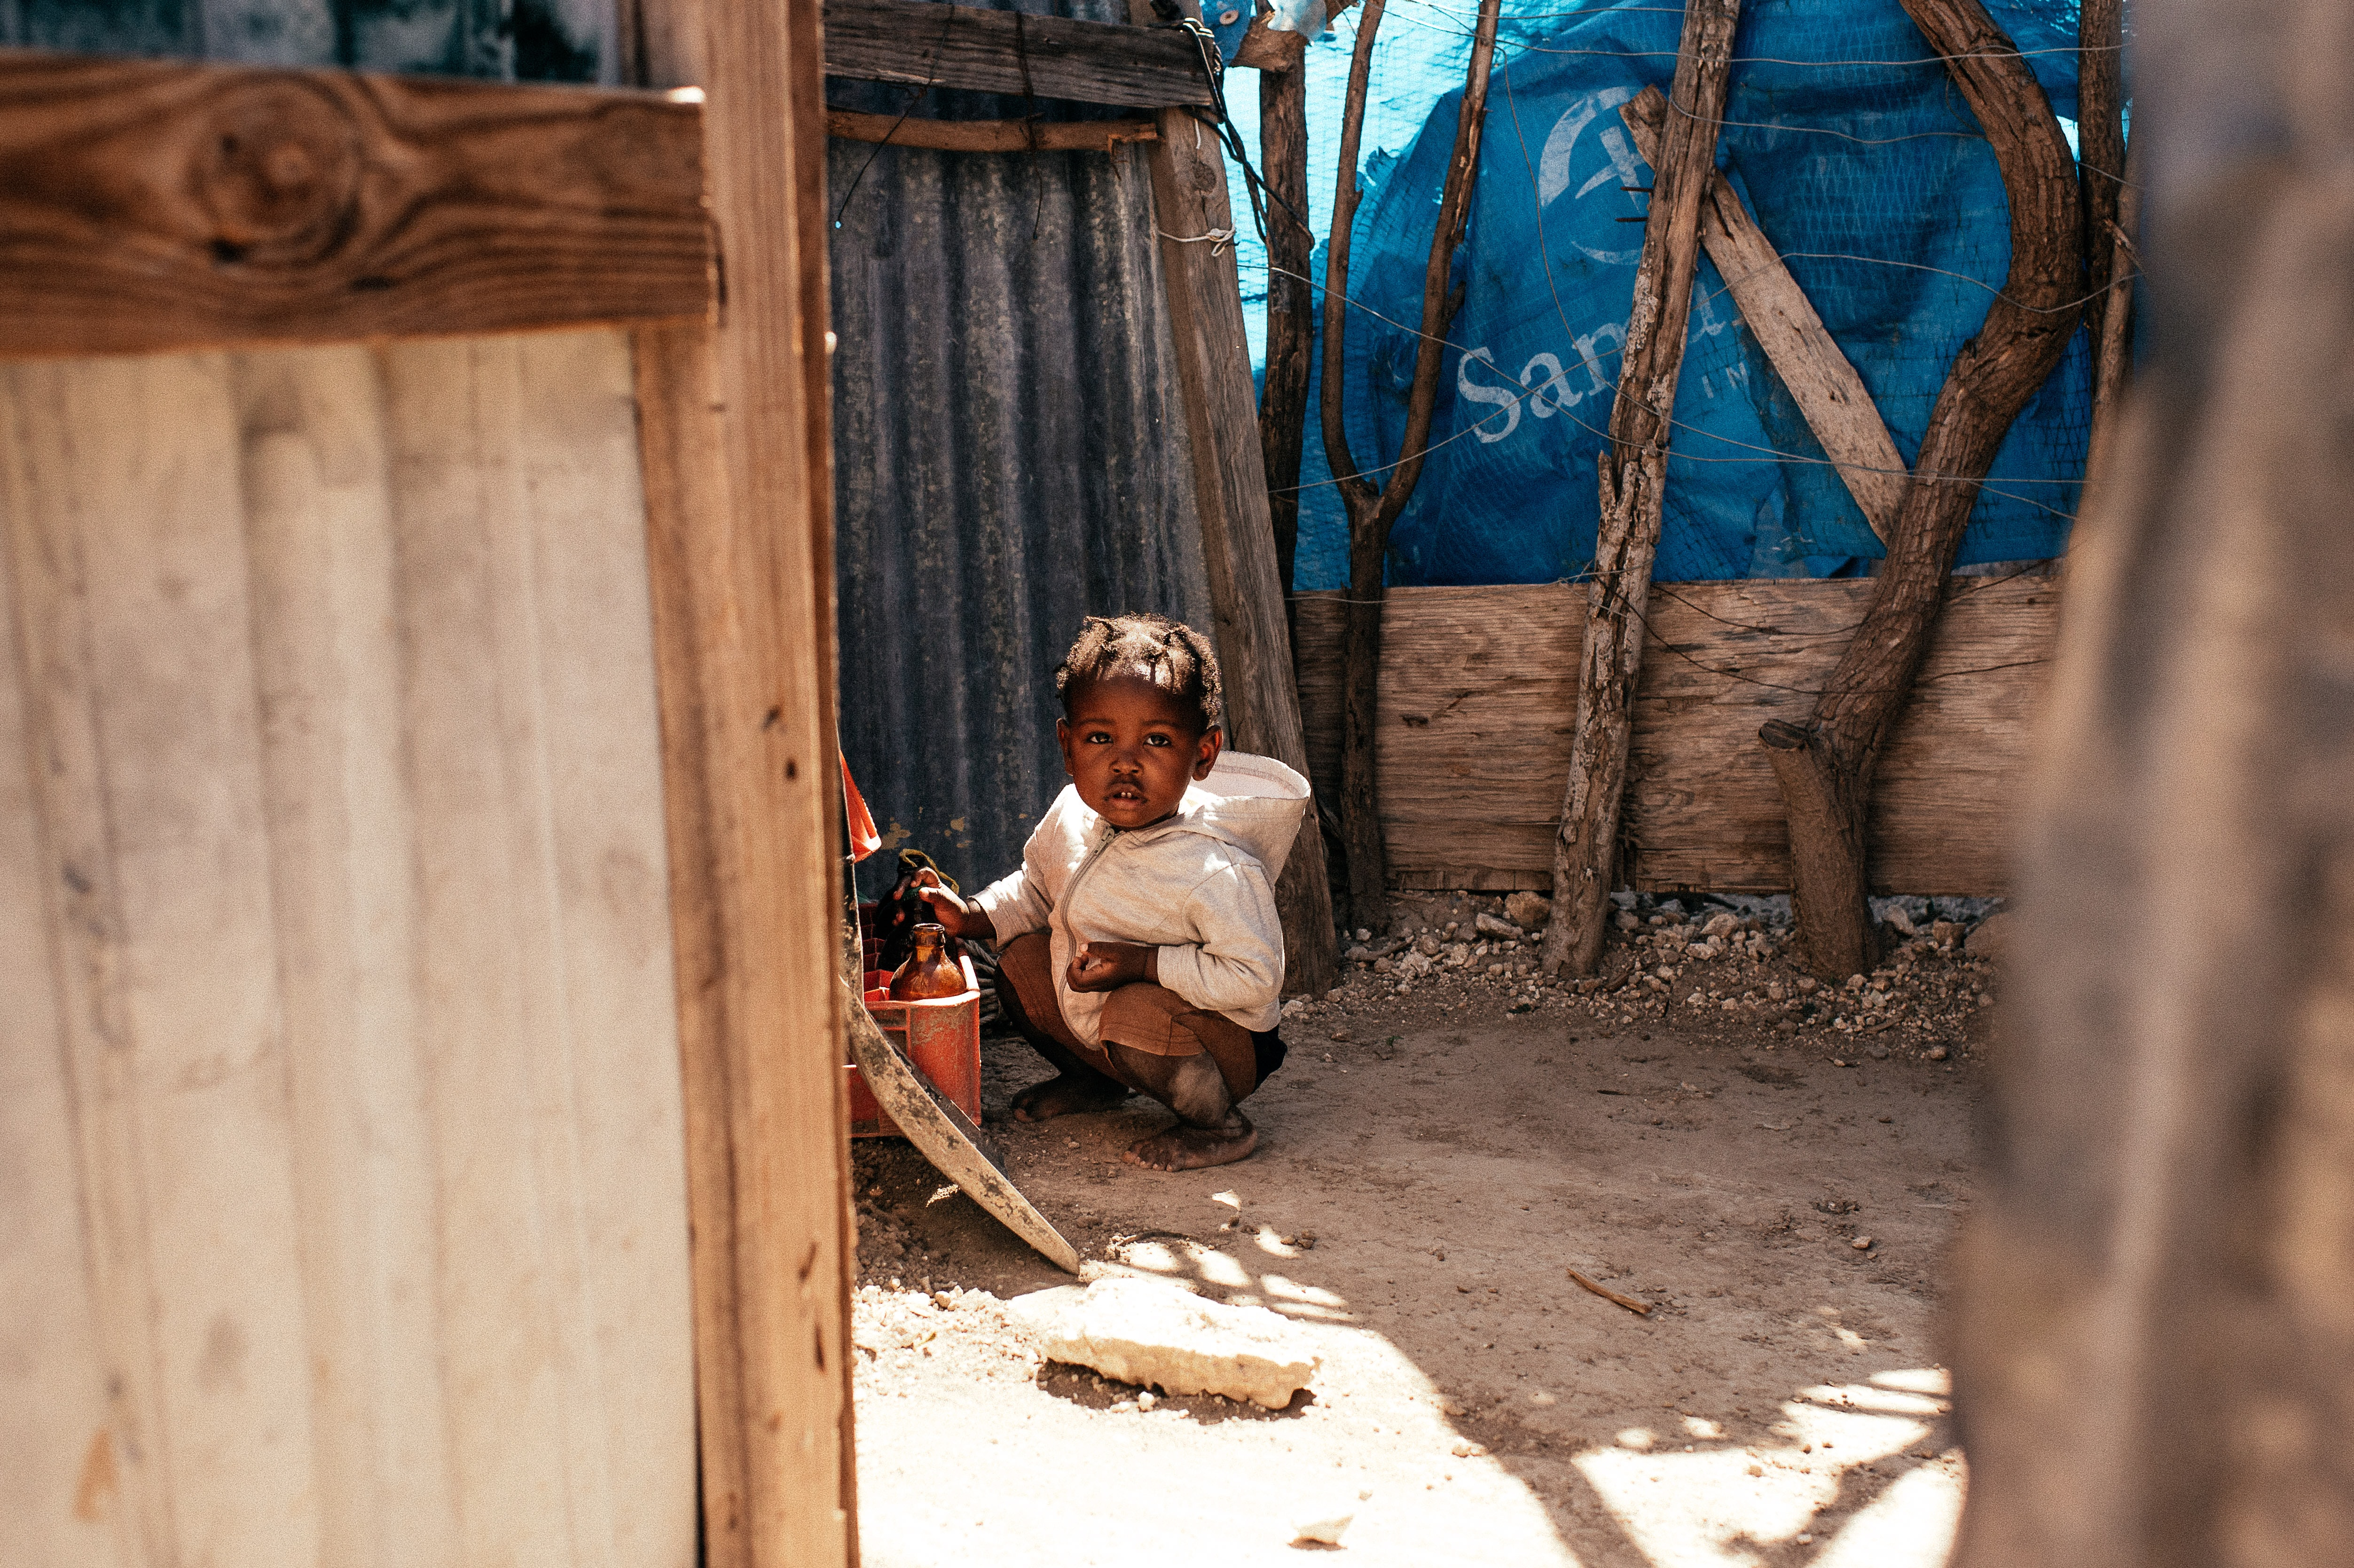 A child wearing a white coat squats on the ground in the dirt to touch some bottles near a building.